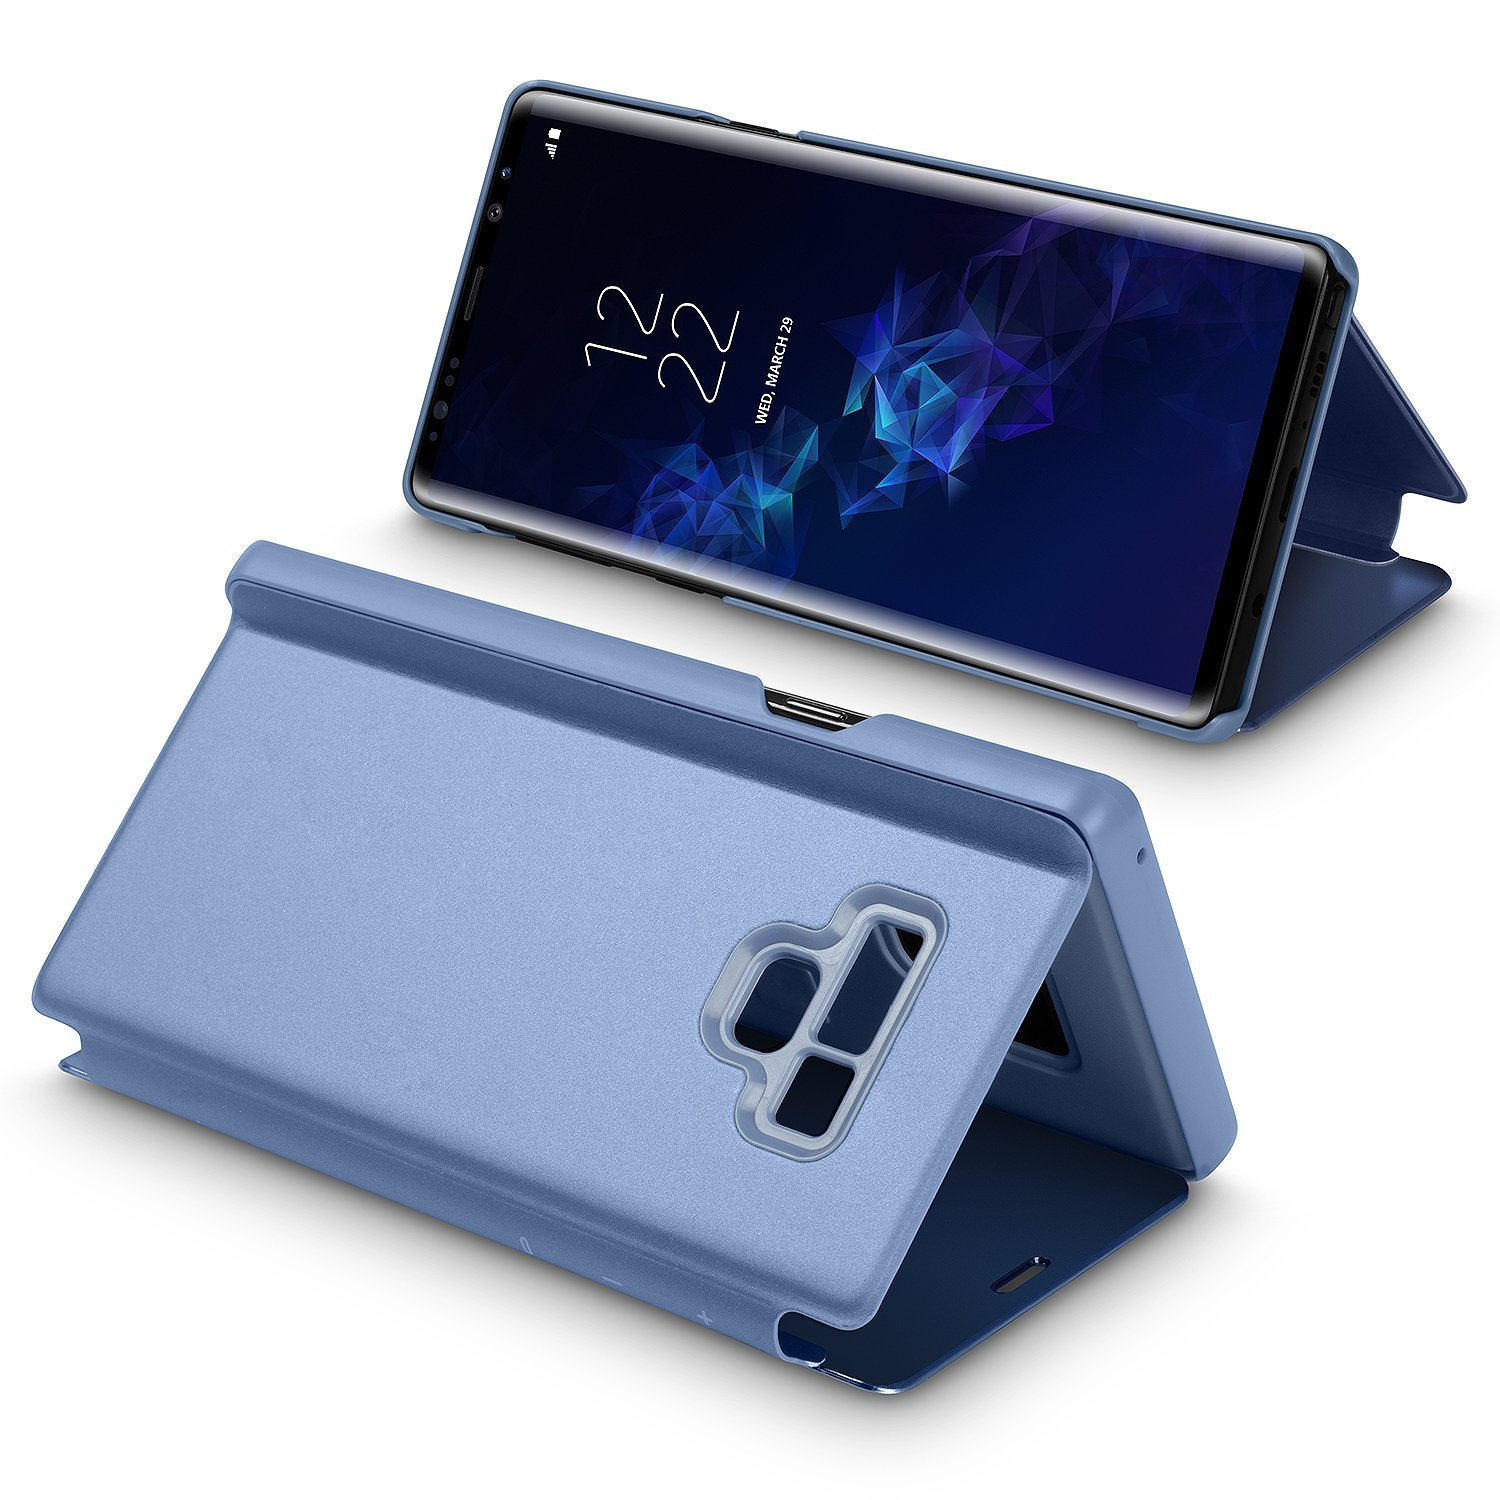 Galaxy Note 9 Case,WATACH Smart Clear View Makeup Mirror Electroplate Plating Kickstand Feature Full Body Protective Flip Folio Cover for Galaxy Note 9 (Blue) by WATACHE (Image #2)